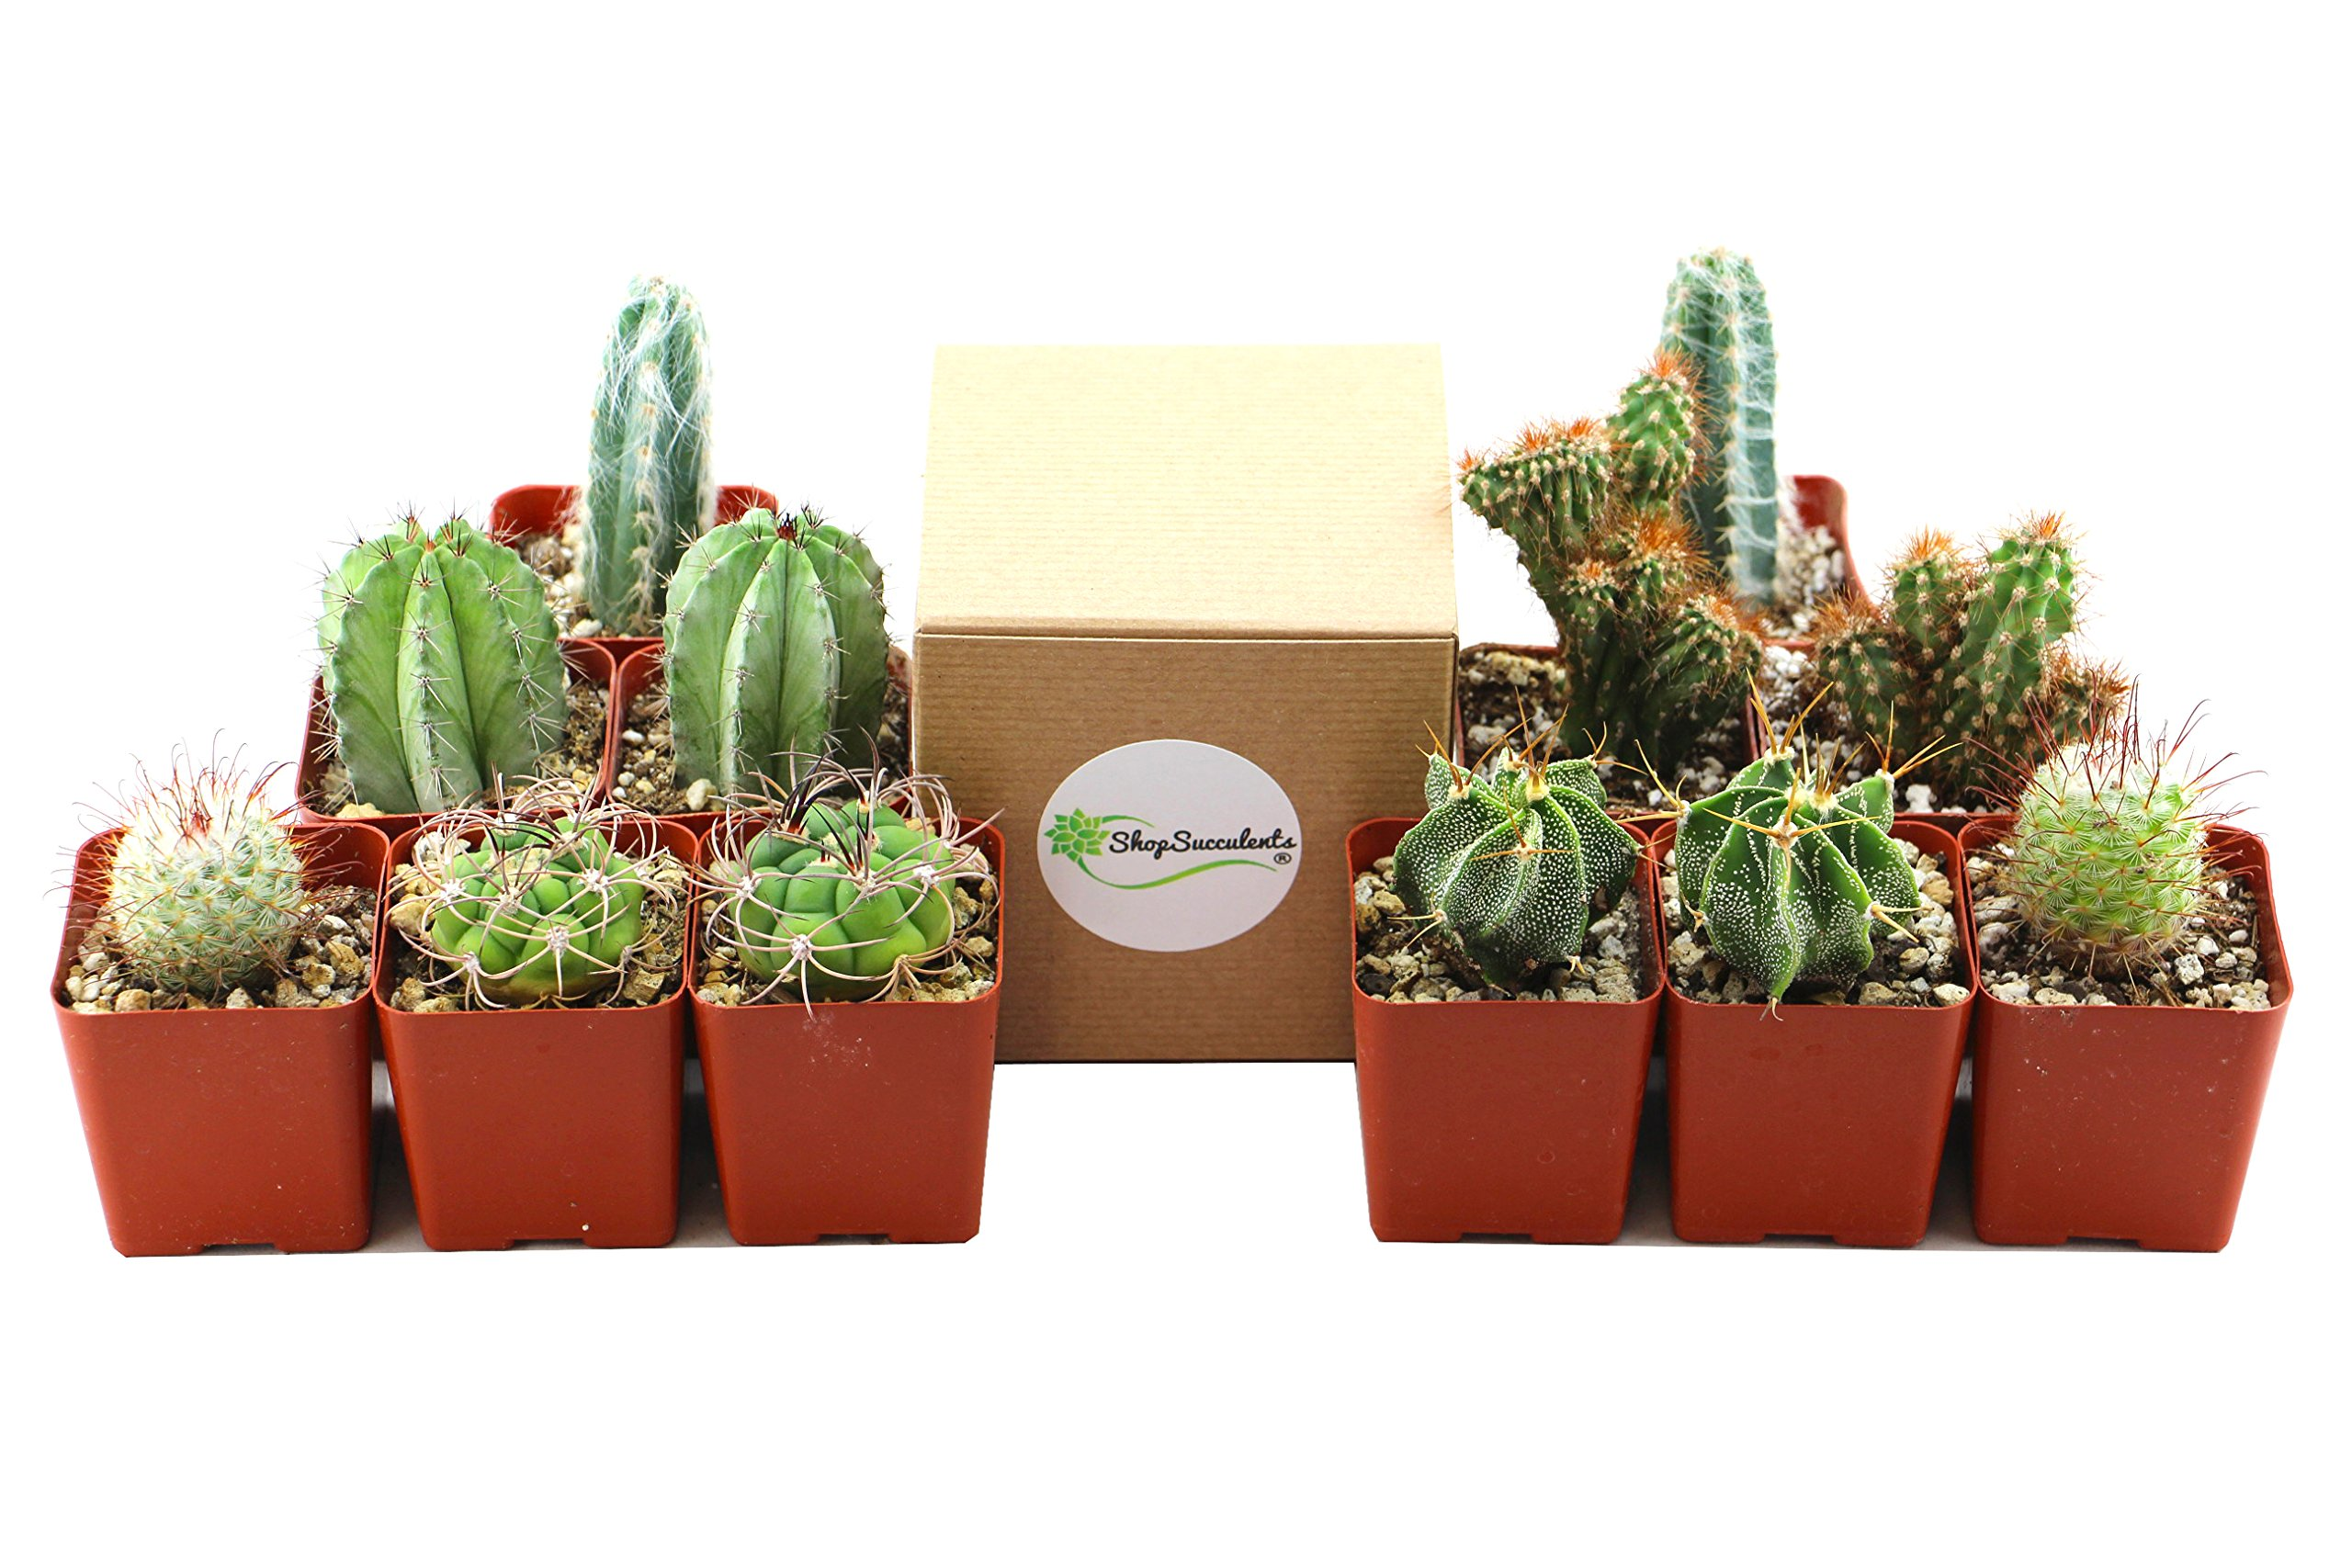 Shop Succulents | Cool Cactus of of Live Succulent Plants, Hand Selected Variety Pack of of Cacti in 2.5'' pots | Collection of 12